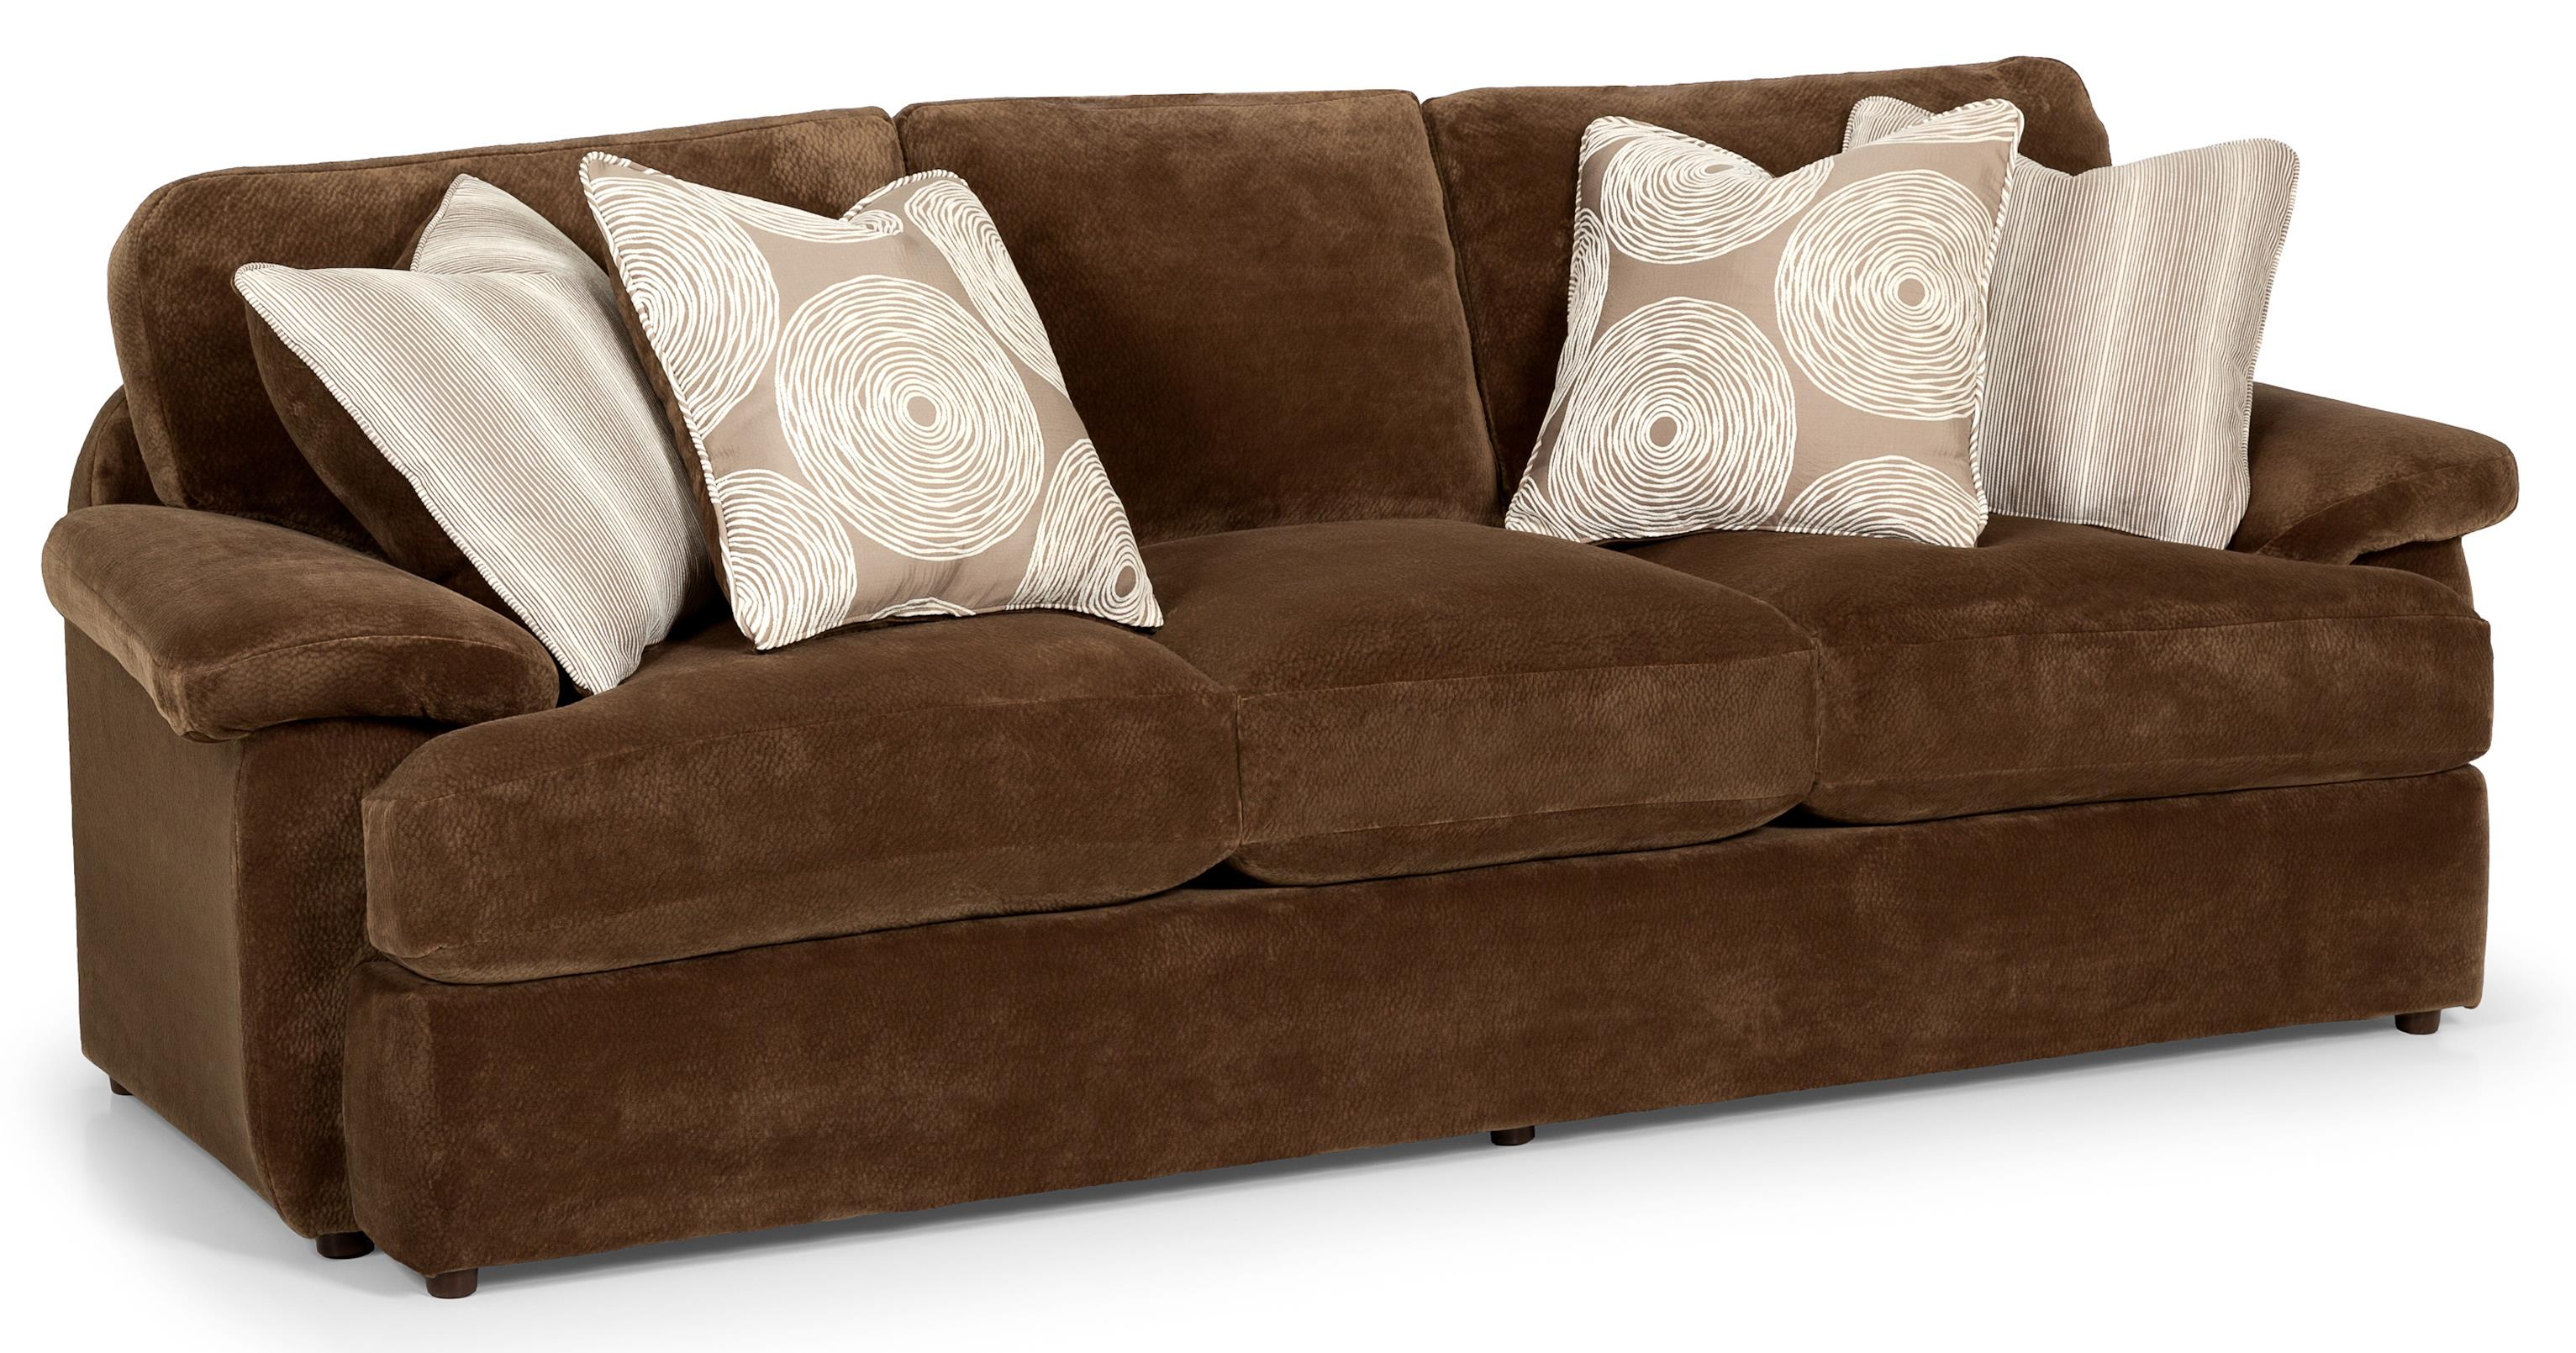 Stanton 186 Casual Three Over Three Sofa With Feather